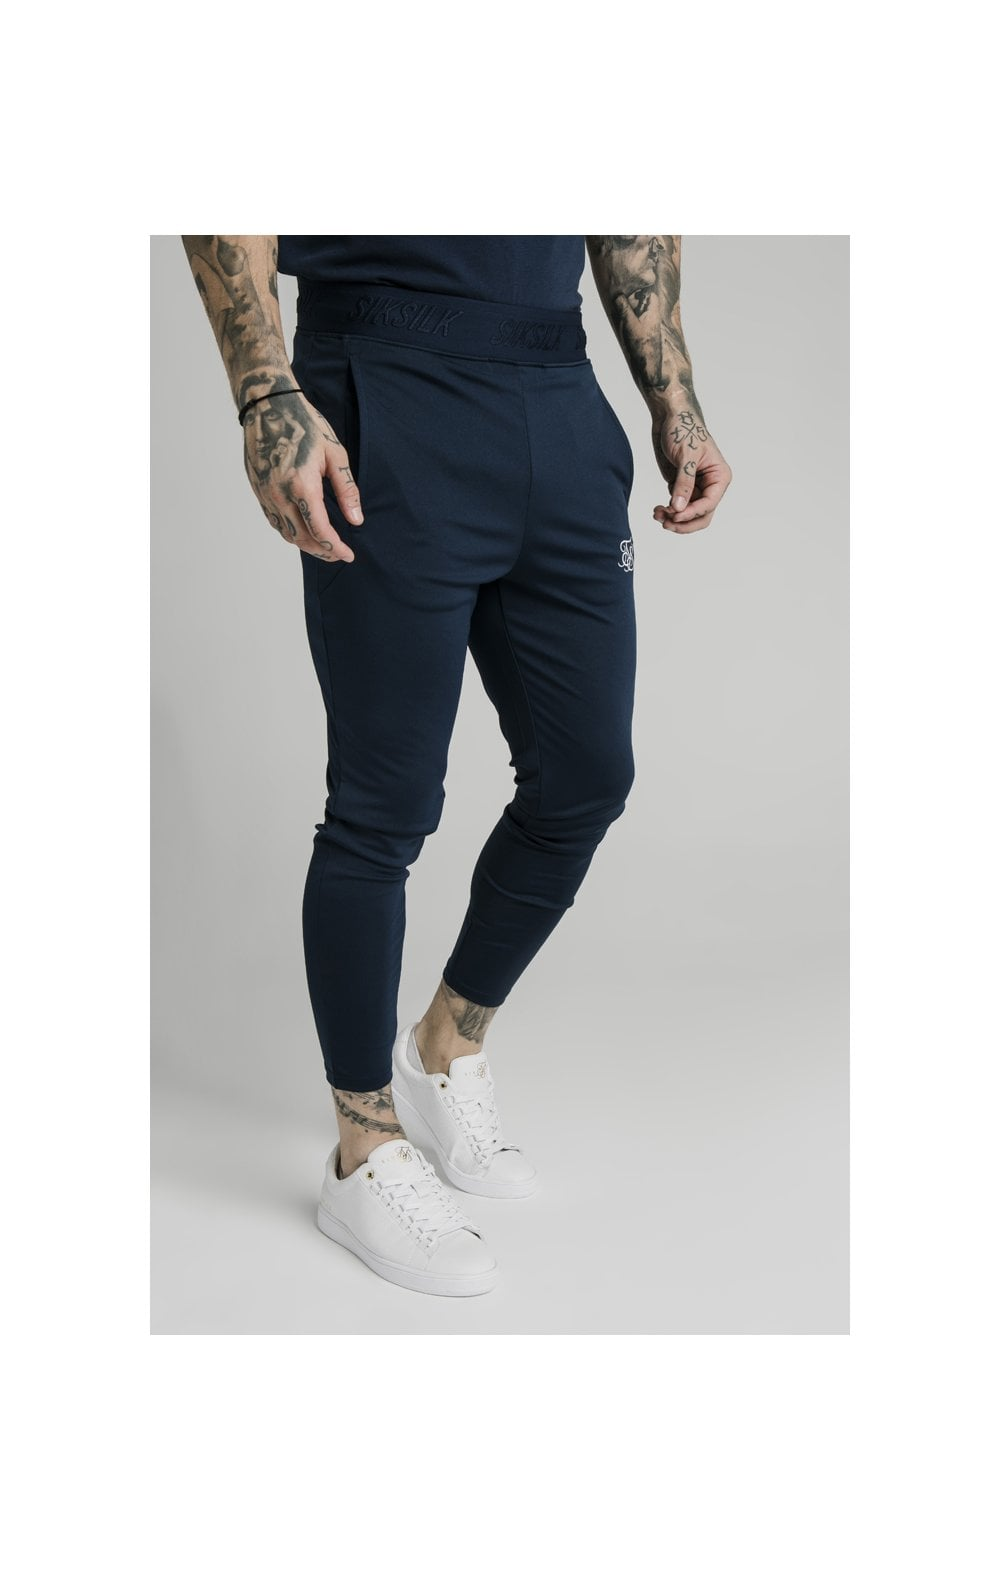 SikSilk Agility Track Pants - Navy (2)